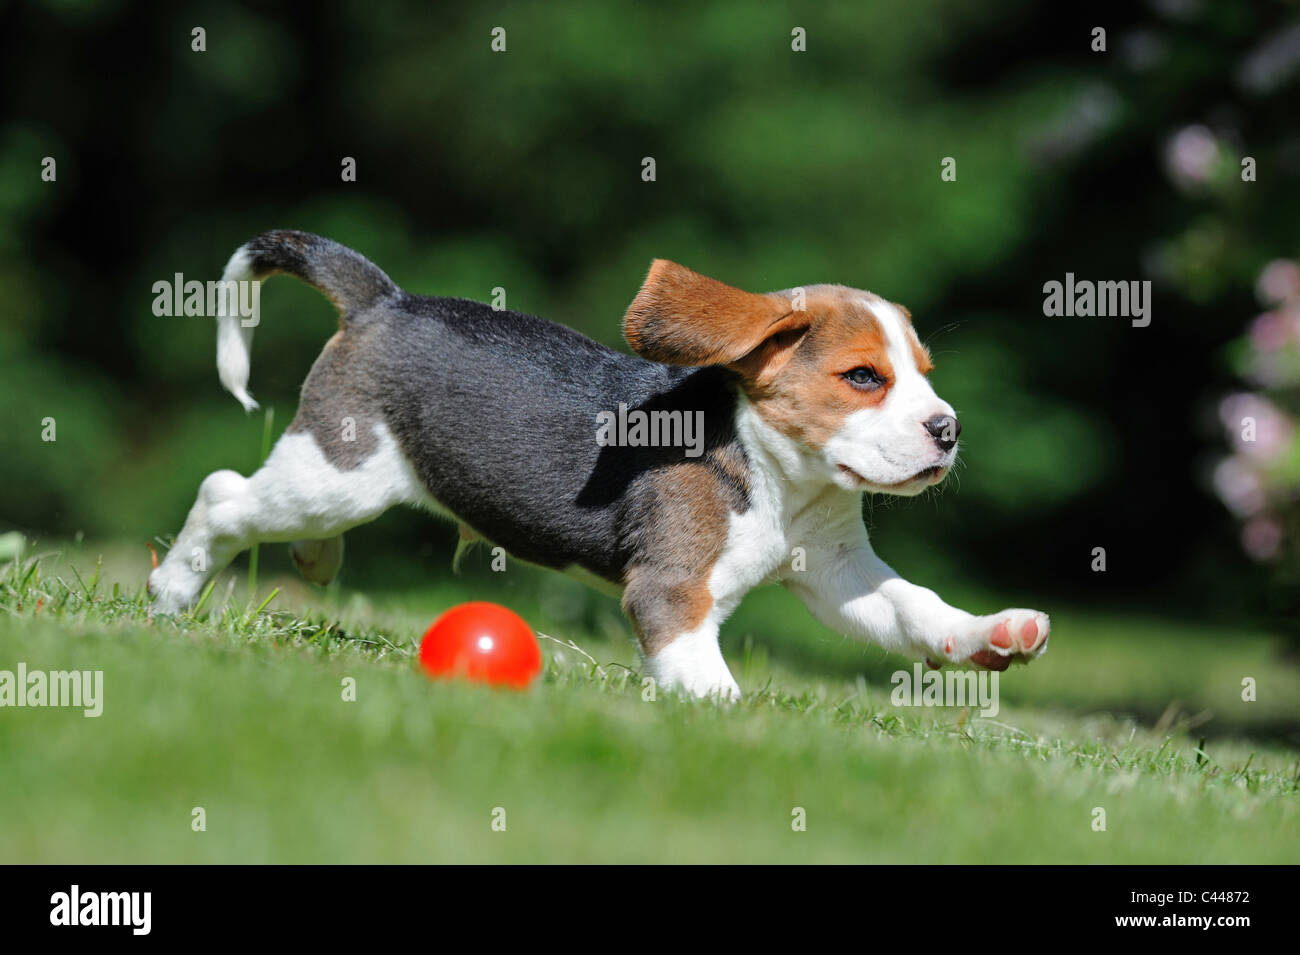 Beagle Puppy Red High Resolution Stock Photography And Images Alamy